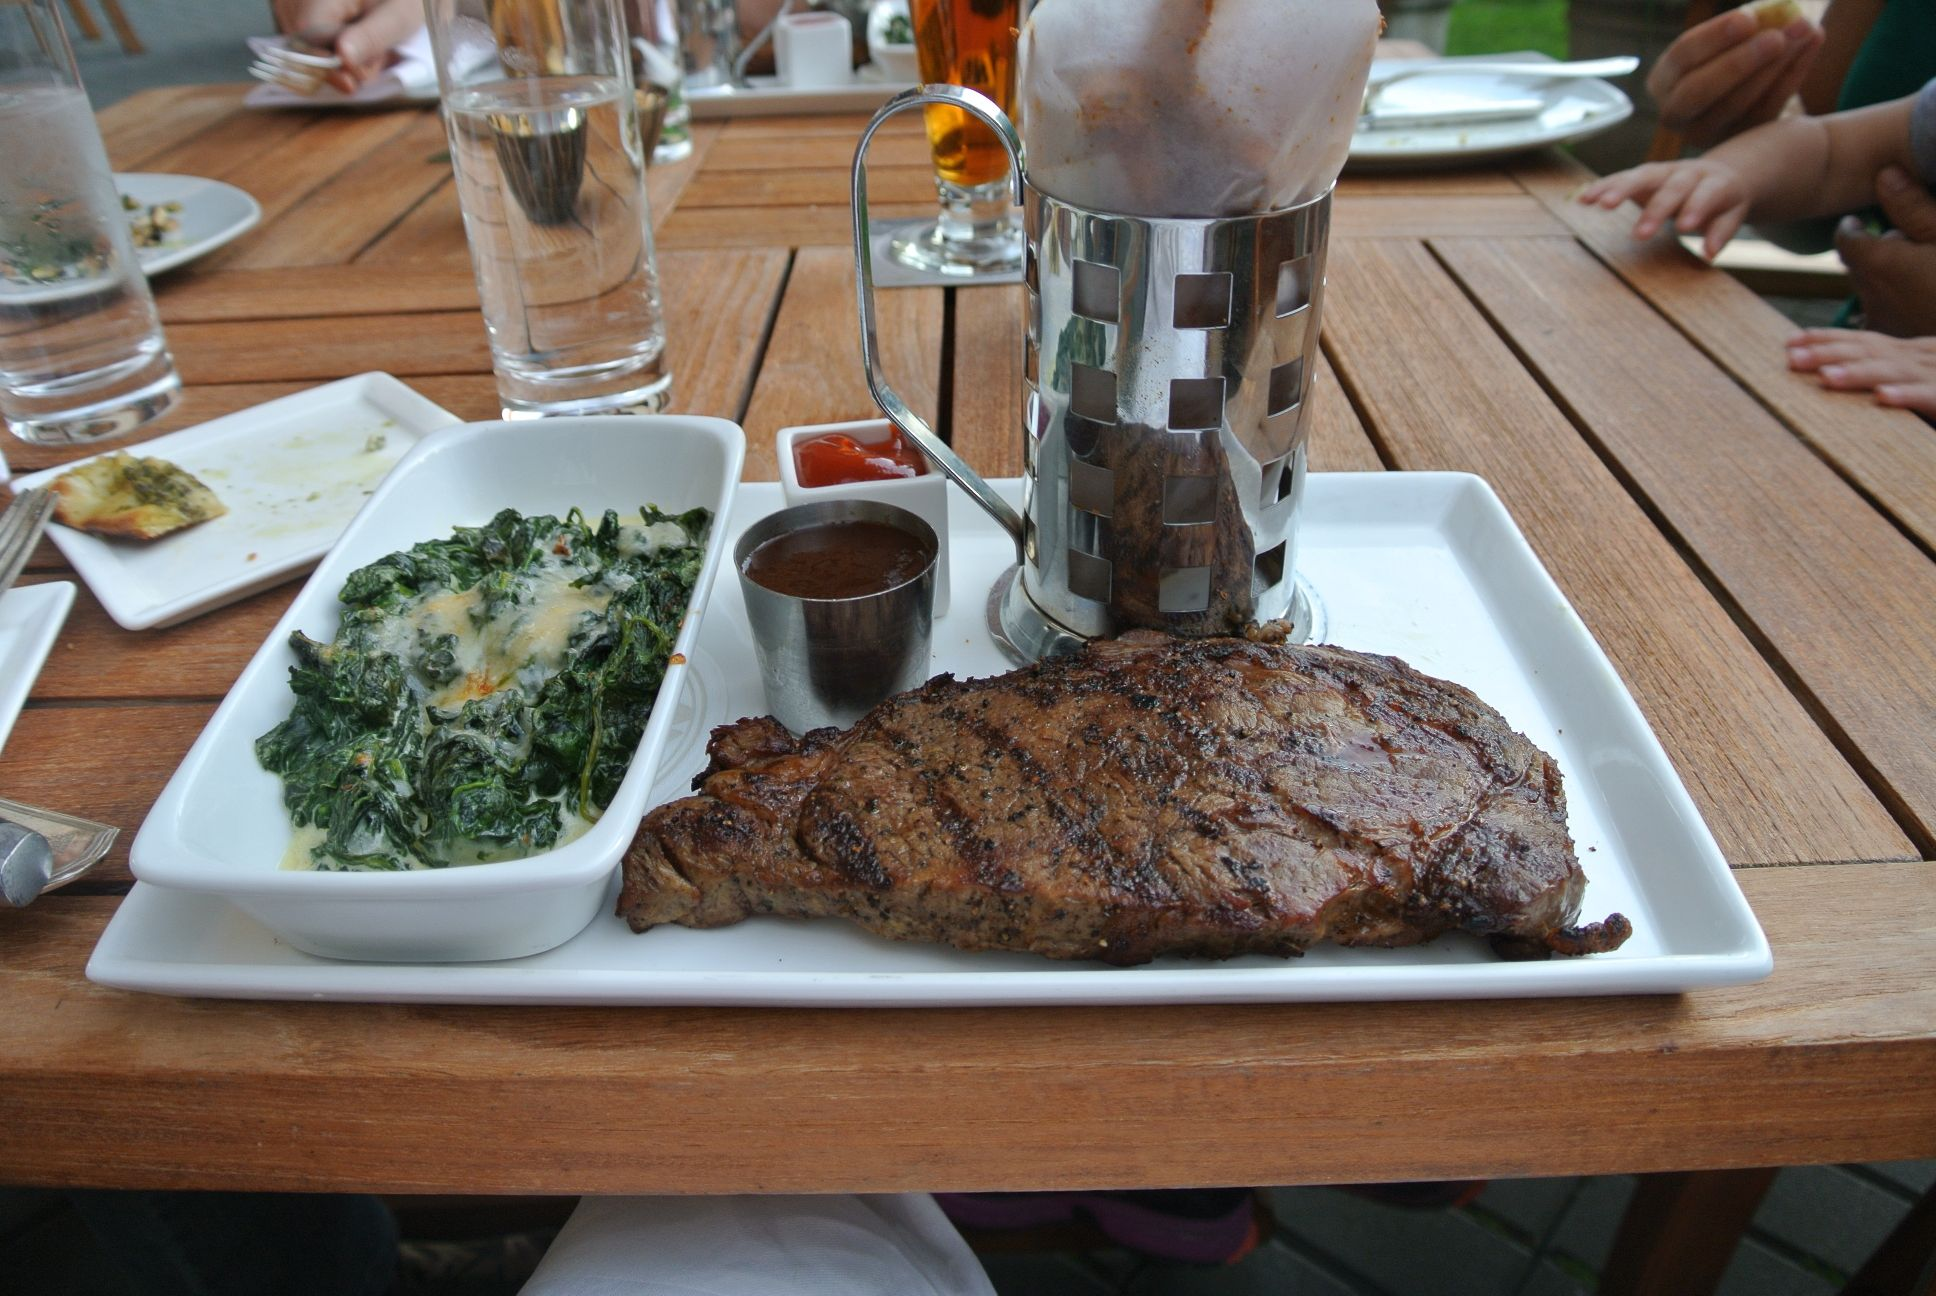 12oz Grilled Angus Ribeye, Hand Cut Spicy Fries, Spinach, Gratin, E2 Sauce